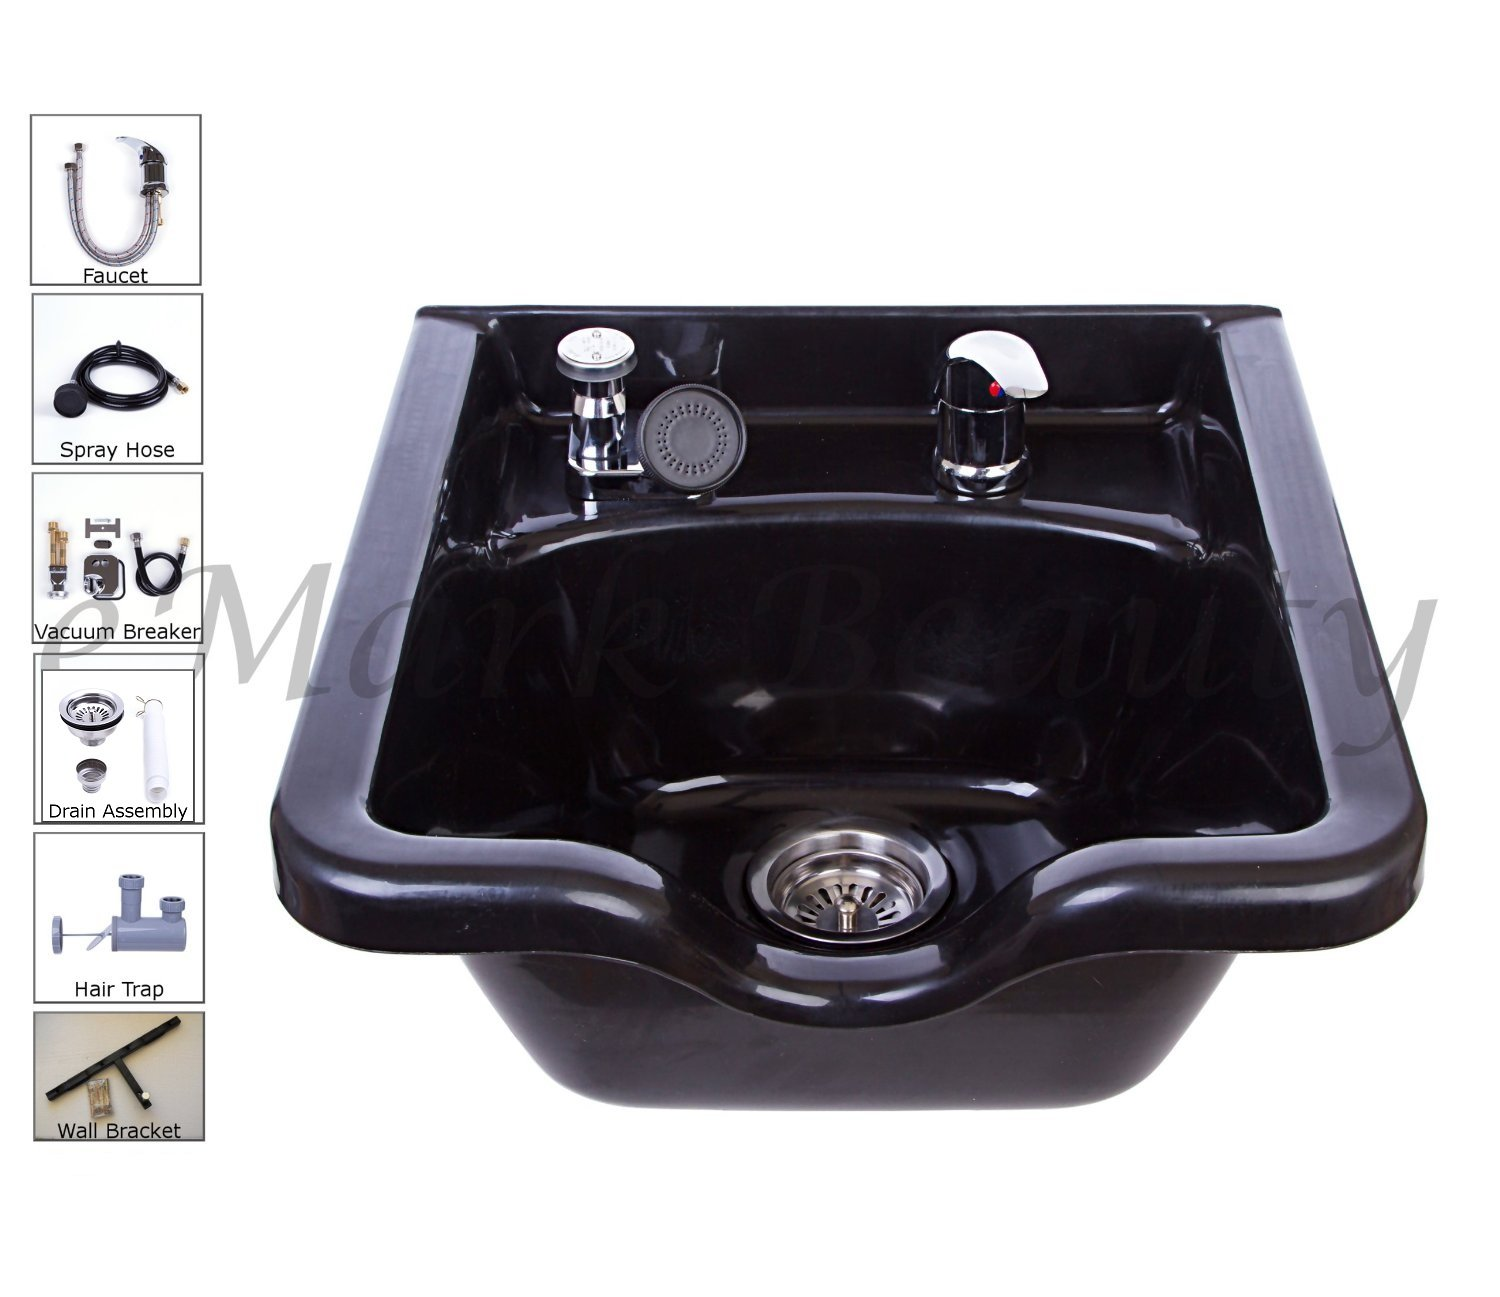 Salon Square ABS Plastic Shampoo Bowl Sink TLC-B11 KSGT